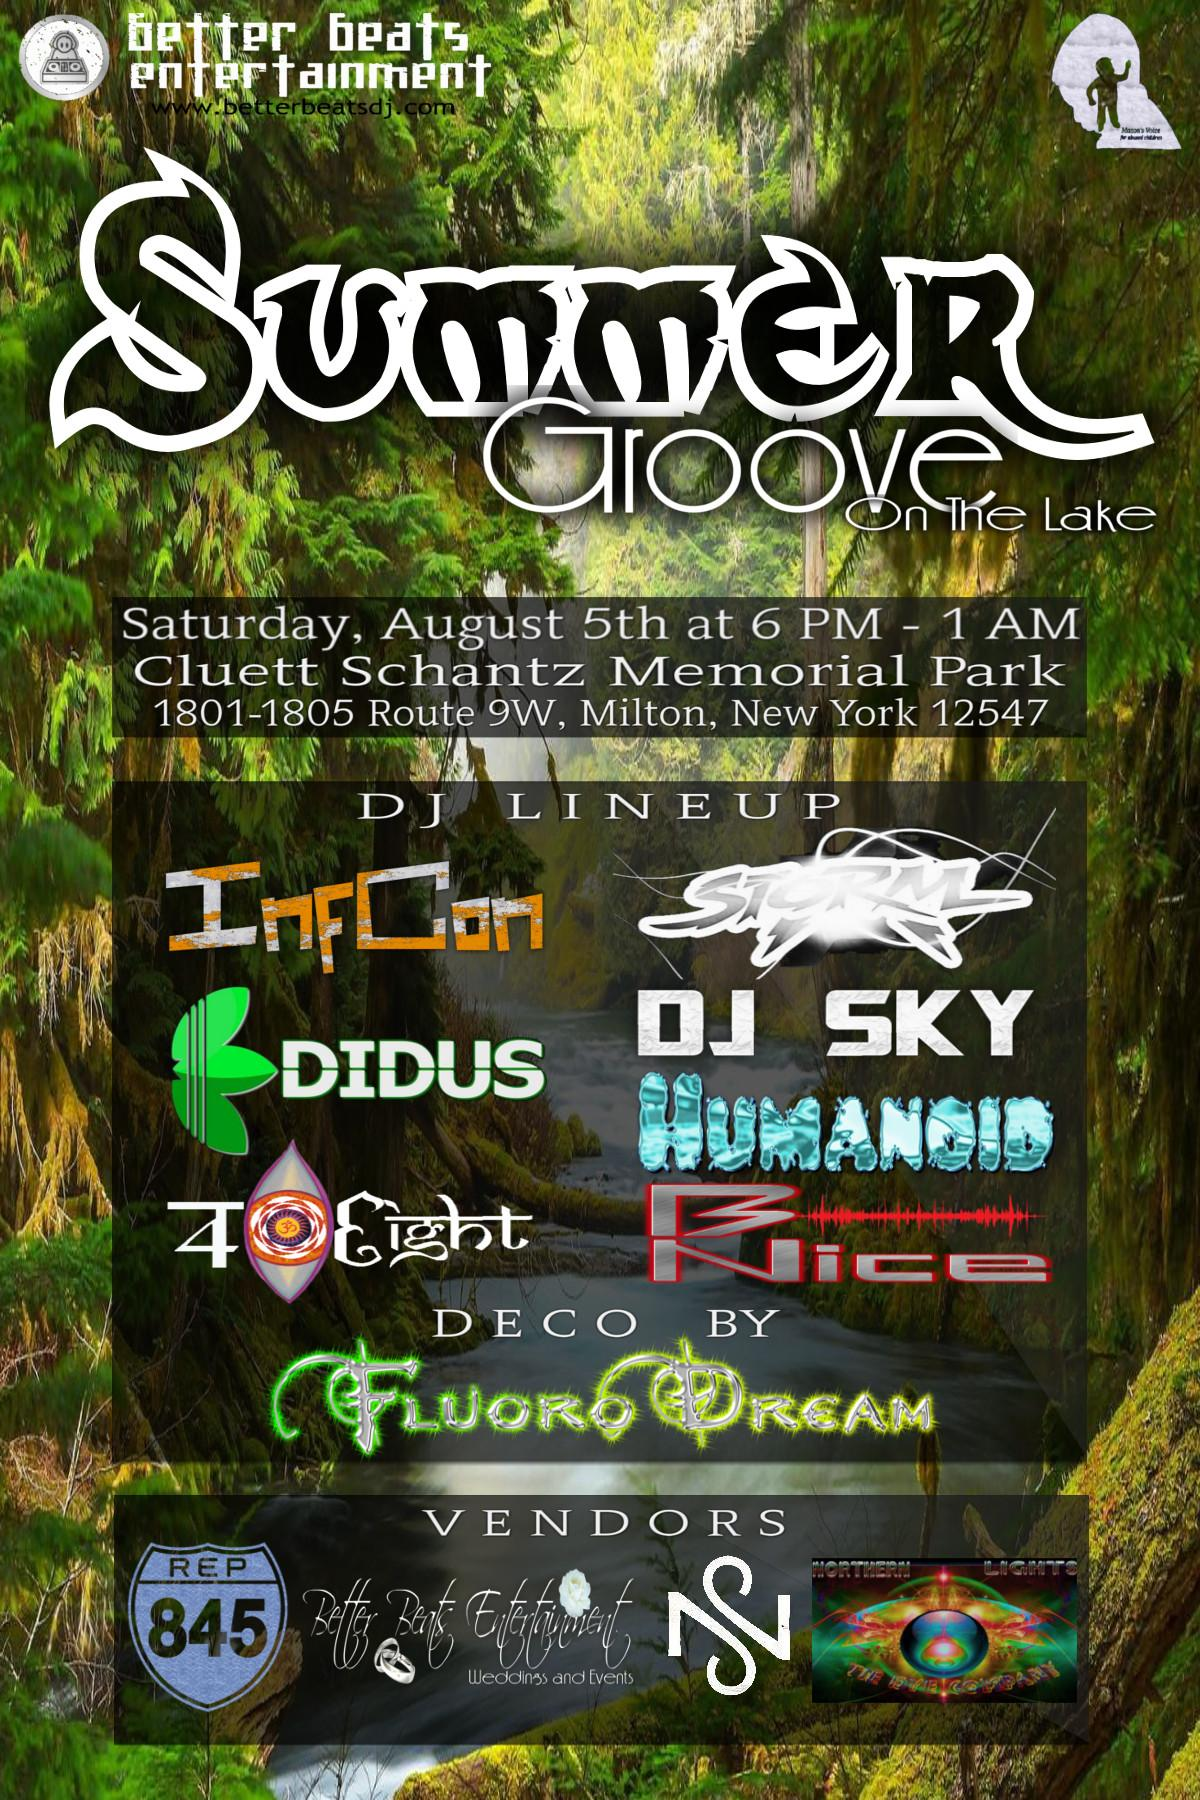 Summer Groove (On The Lake!)